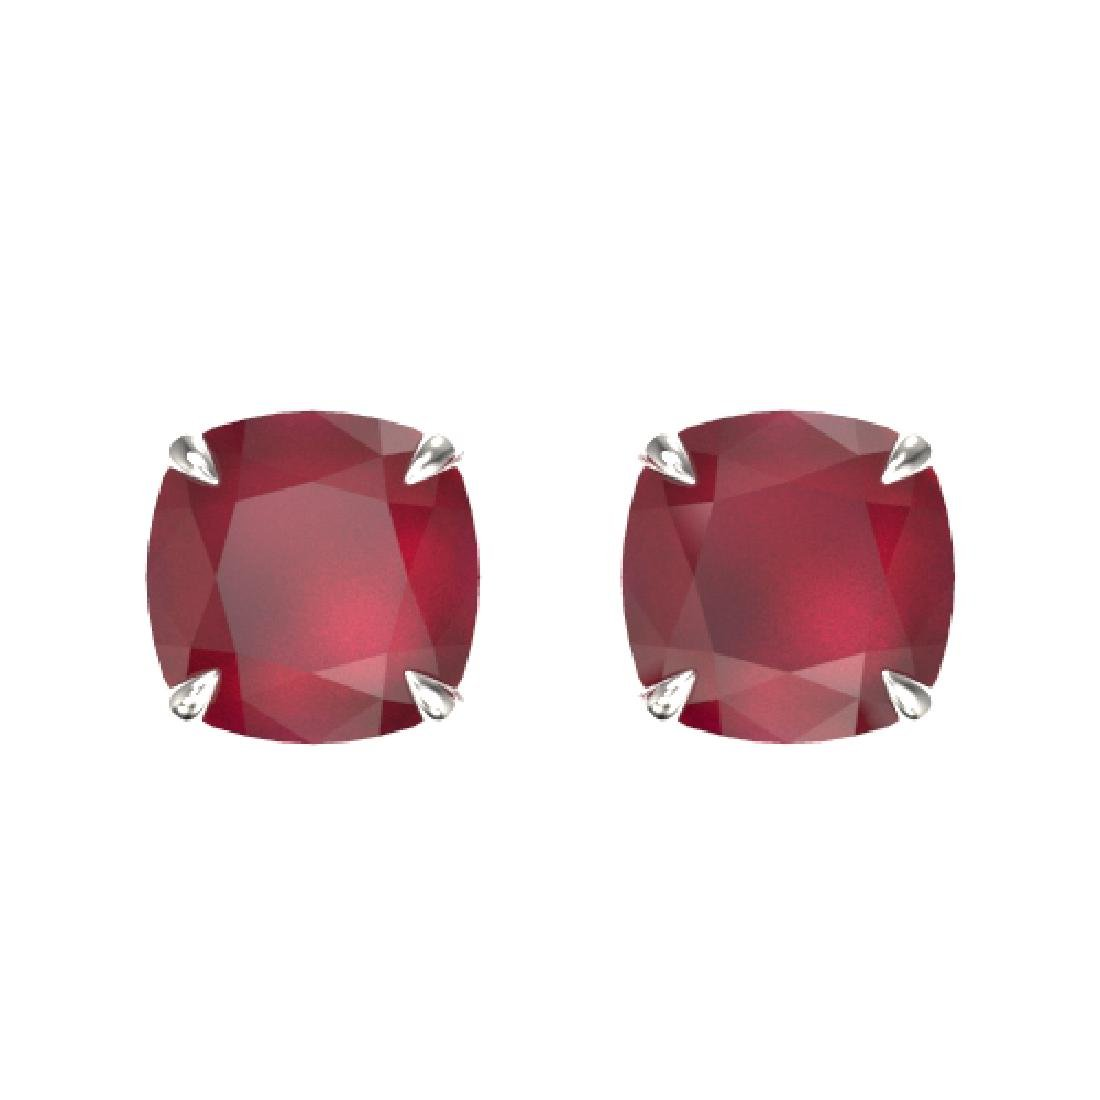 4 CTW Cushion Cut Ruby Designer Solitaire Stud Earrings